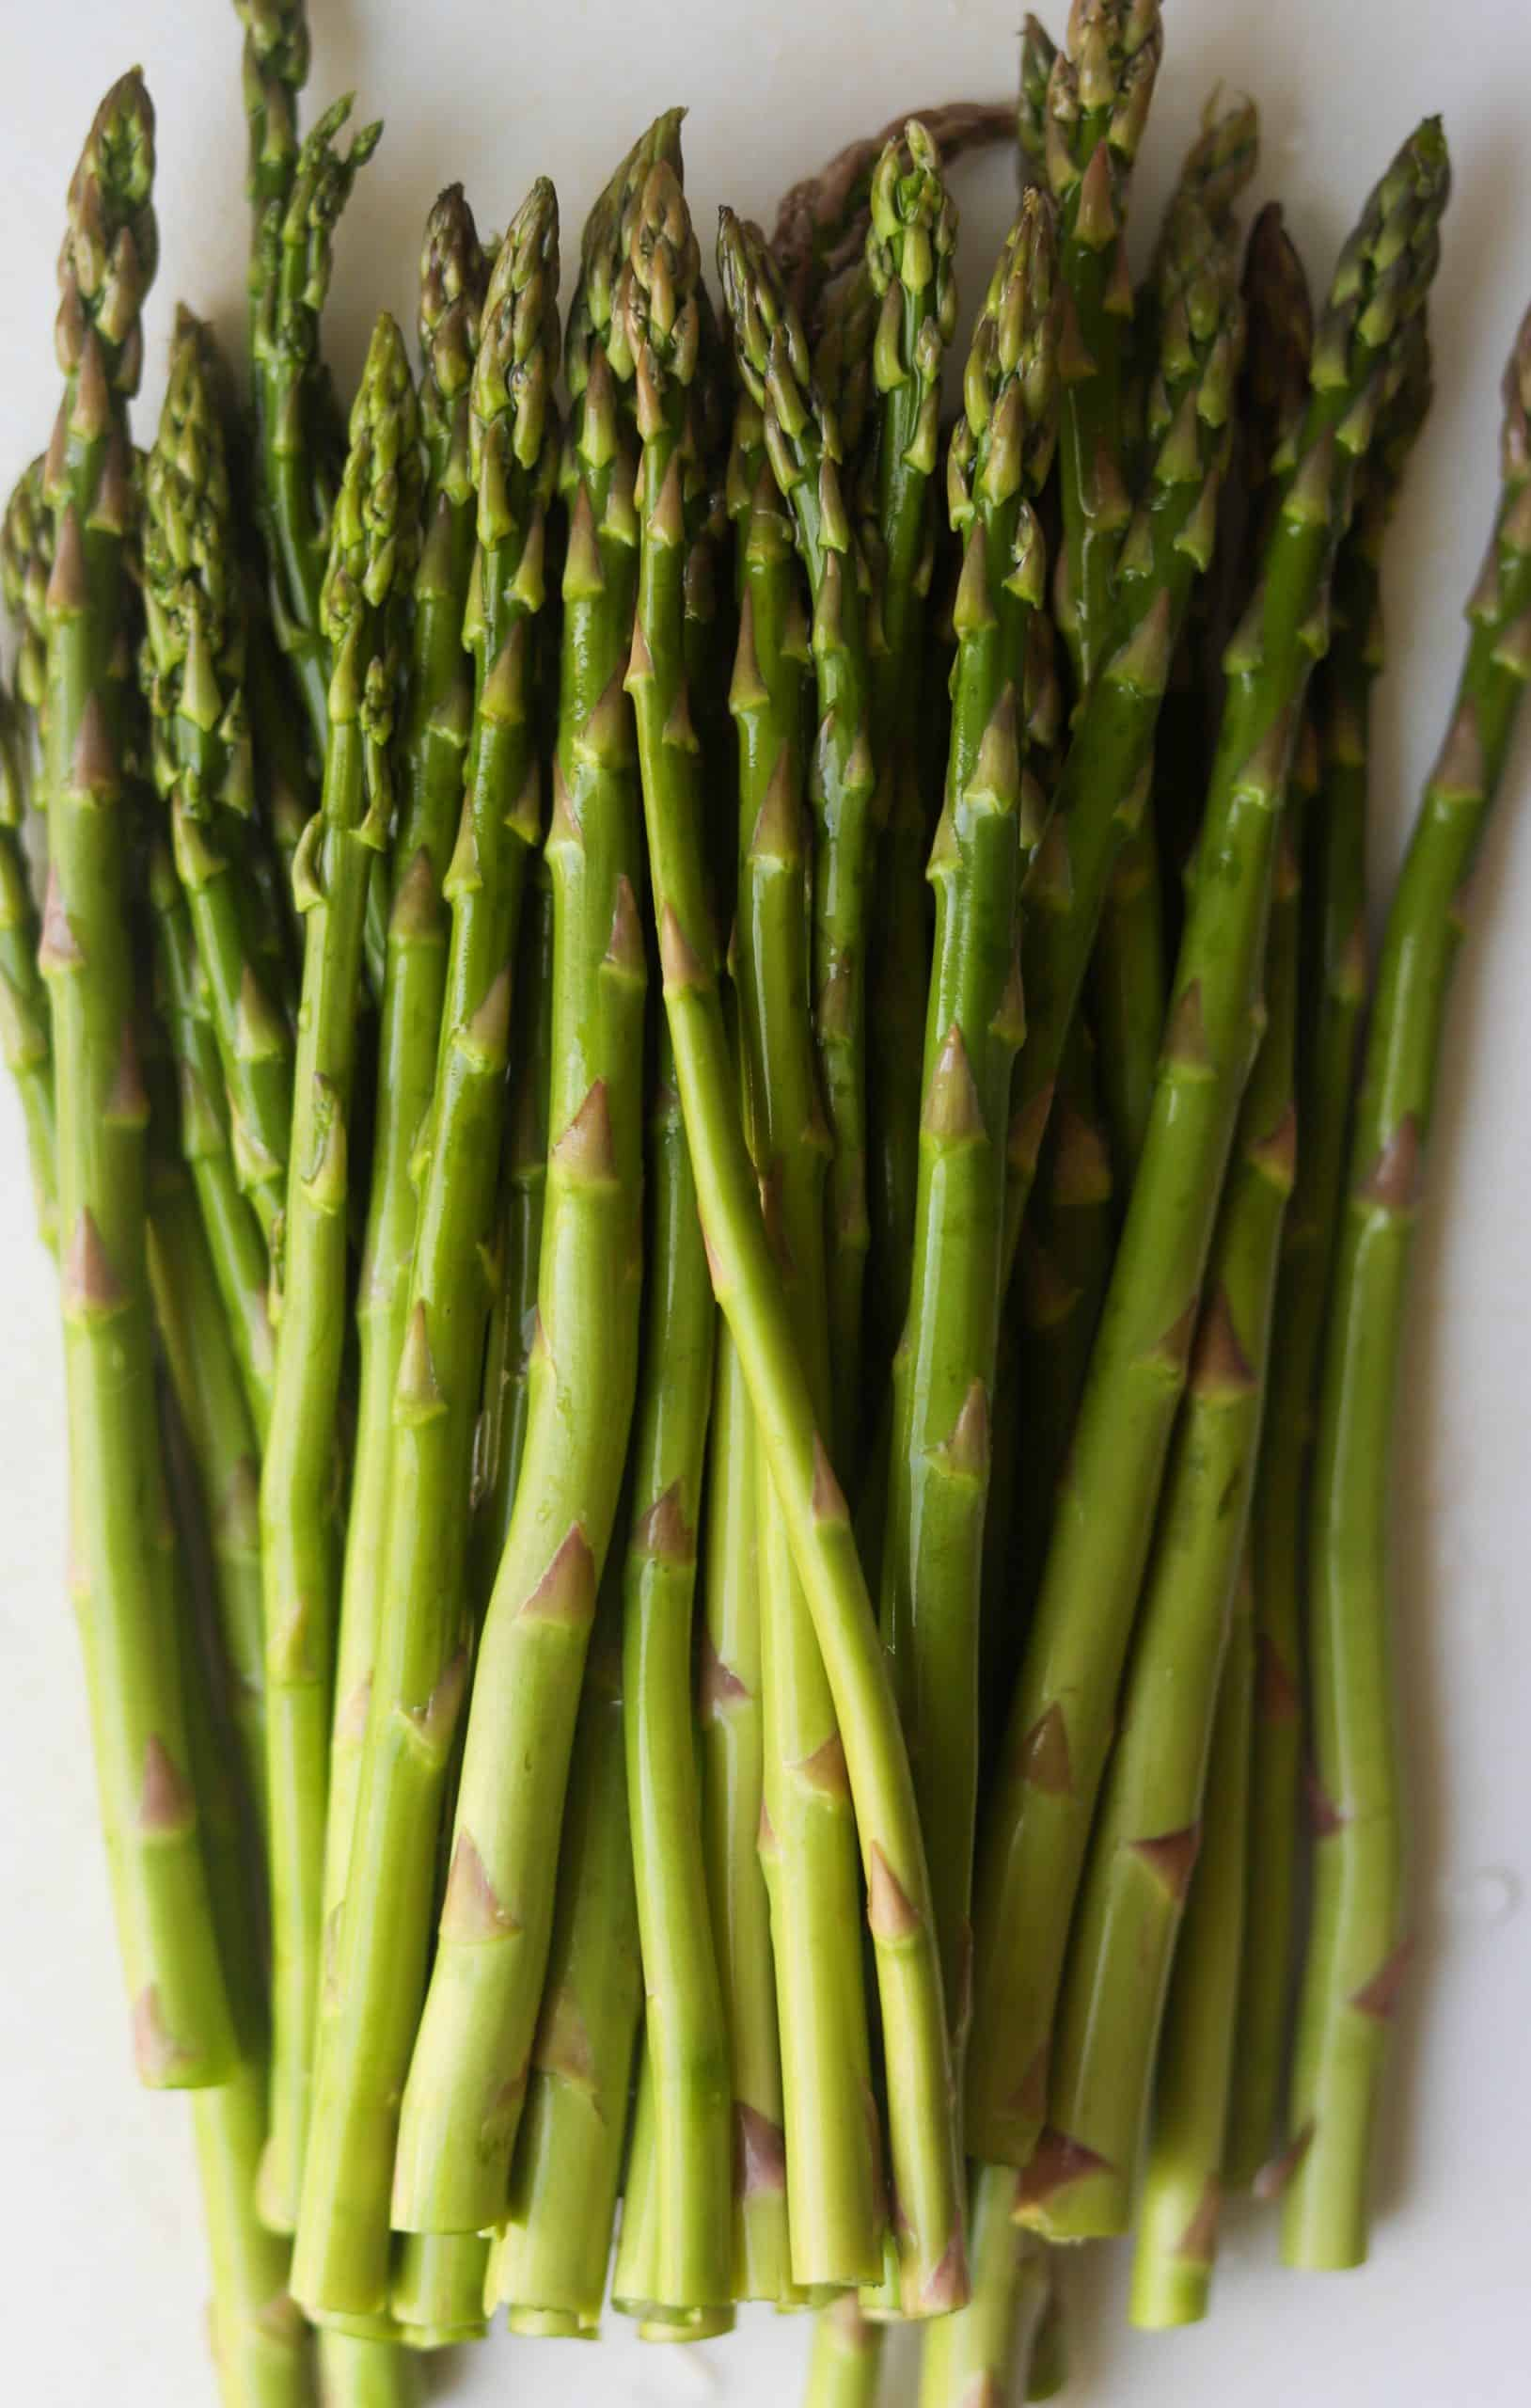 A white board filled with asparagus spears.